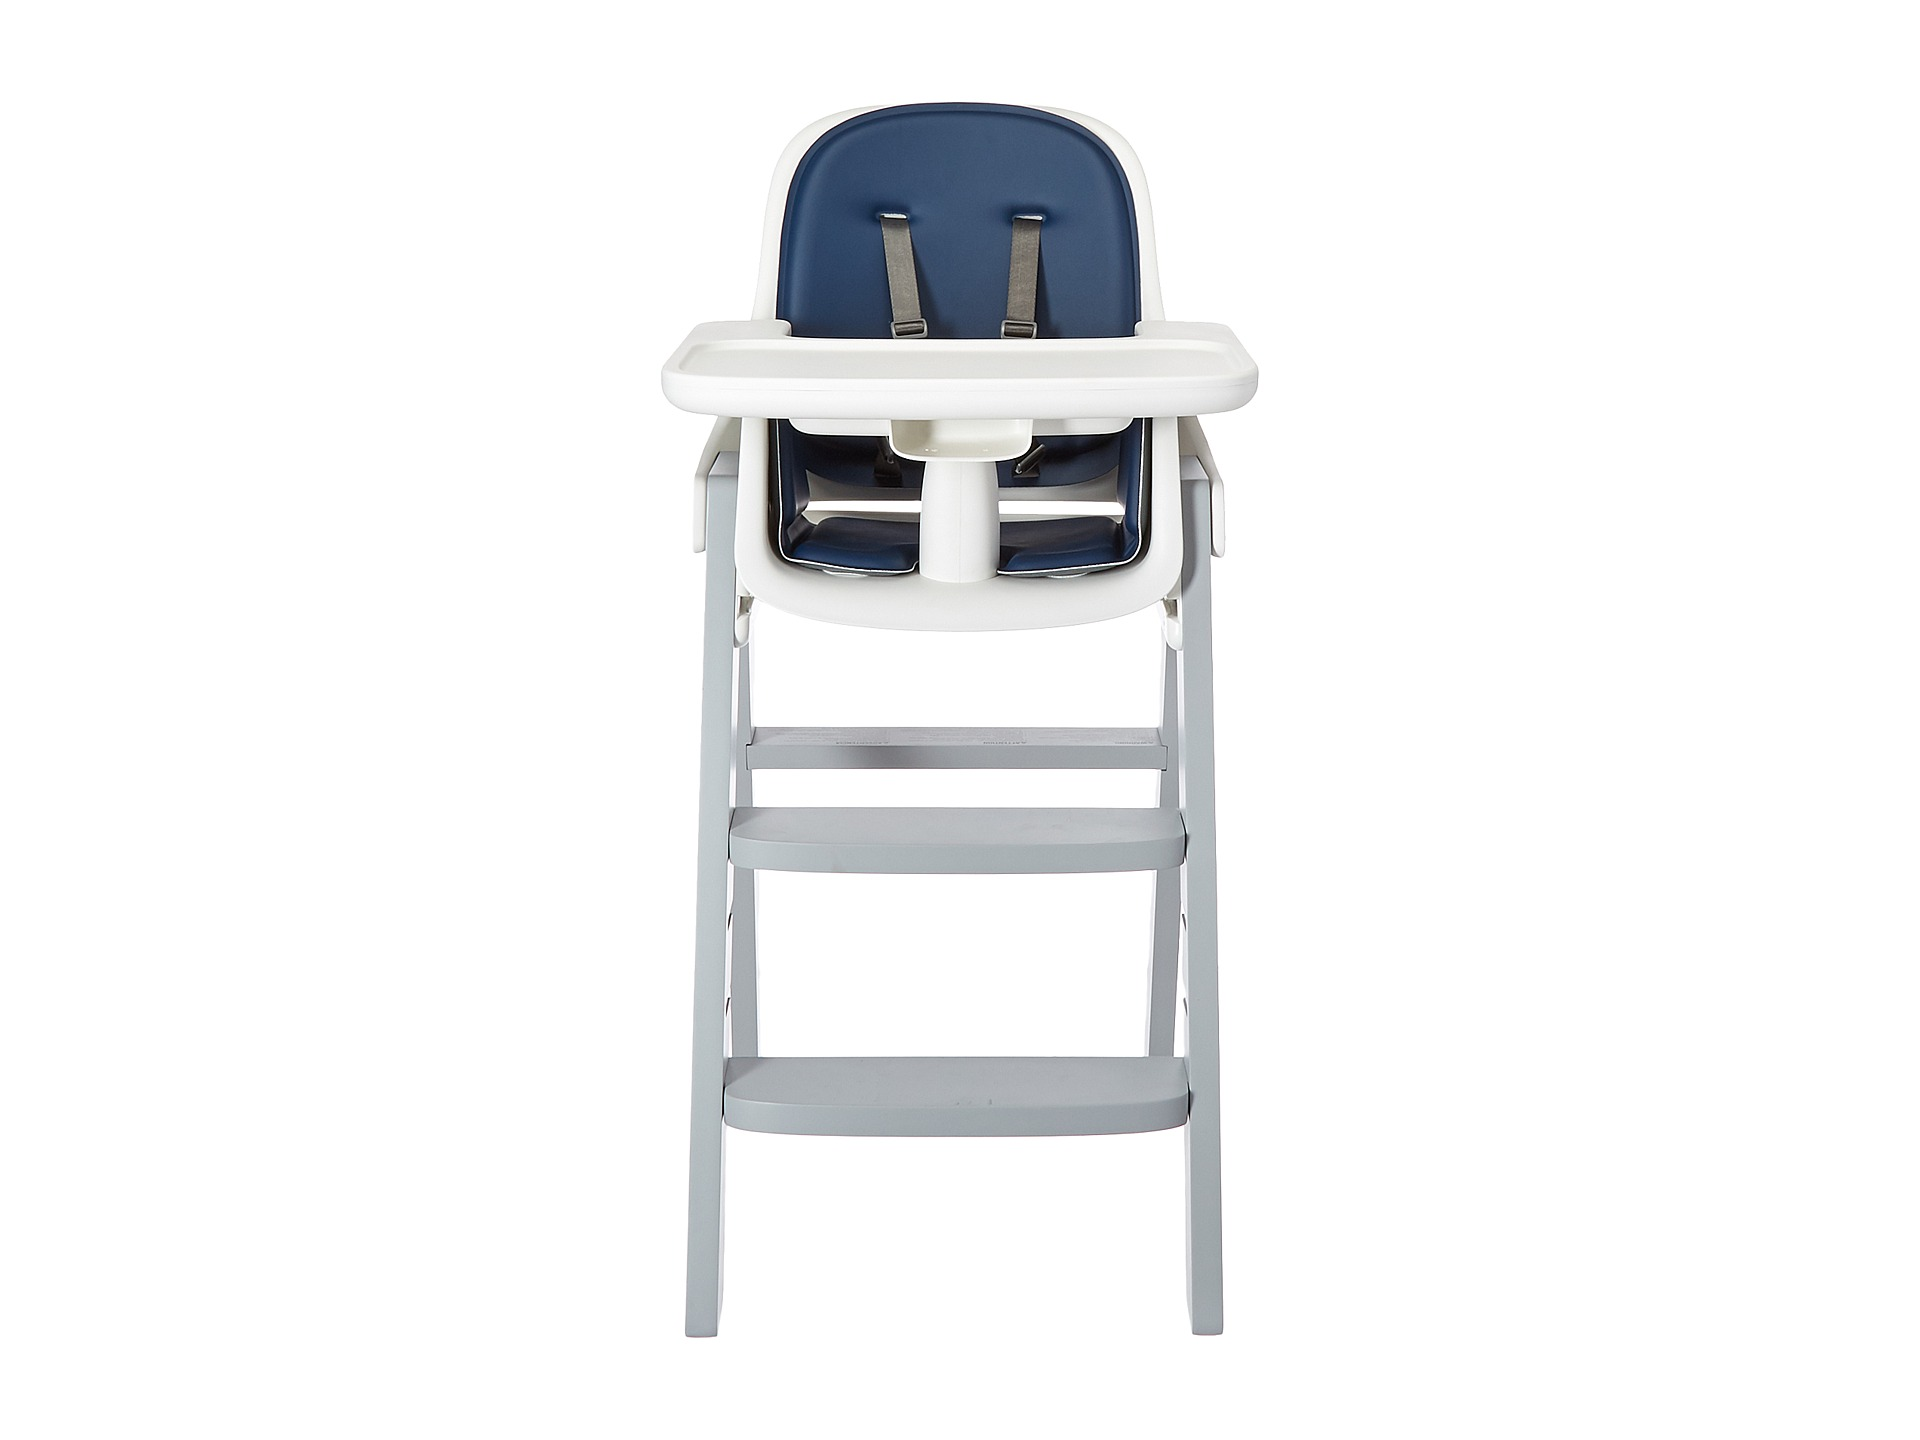 oxo tot sprout chair baby high walmart zappos free shipping both ways